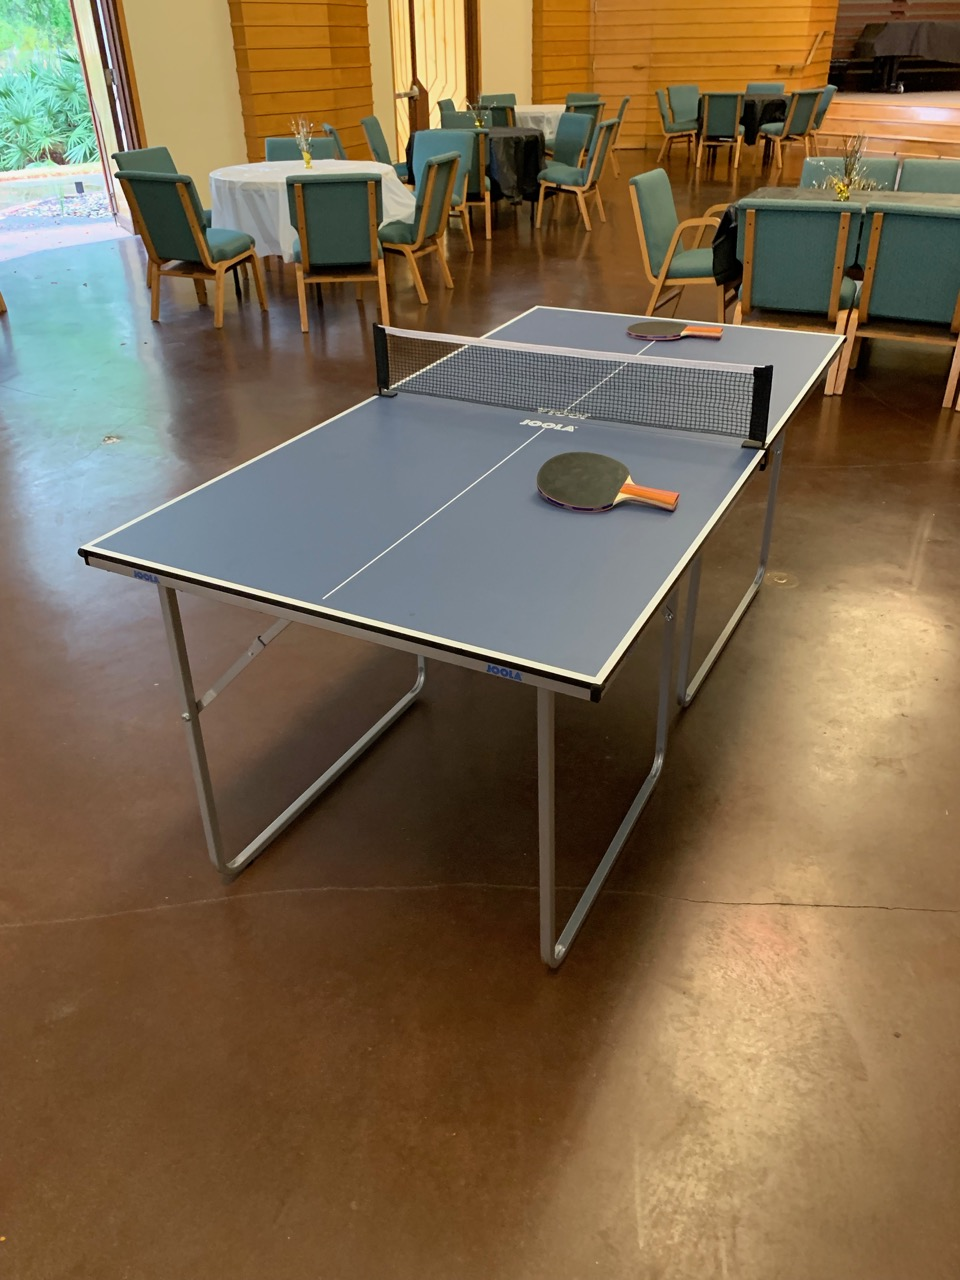 2 Player Mid Size Ping Pong Table Rental